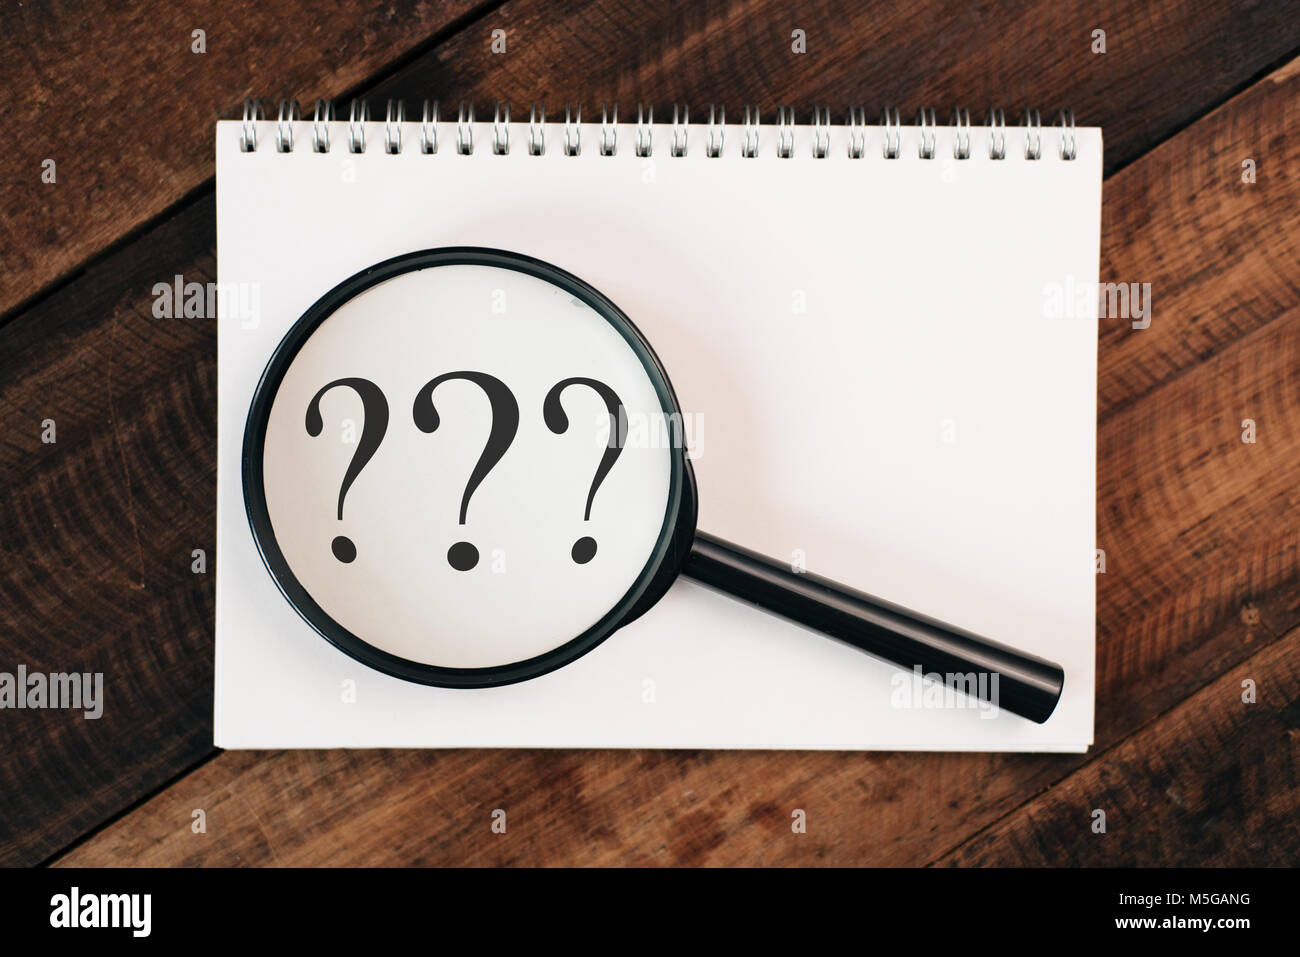 magnifying glass zooming into question mark on notebook on a wooden table. problem and research concept Stock Photo